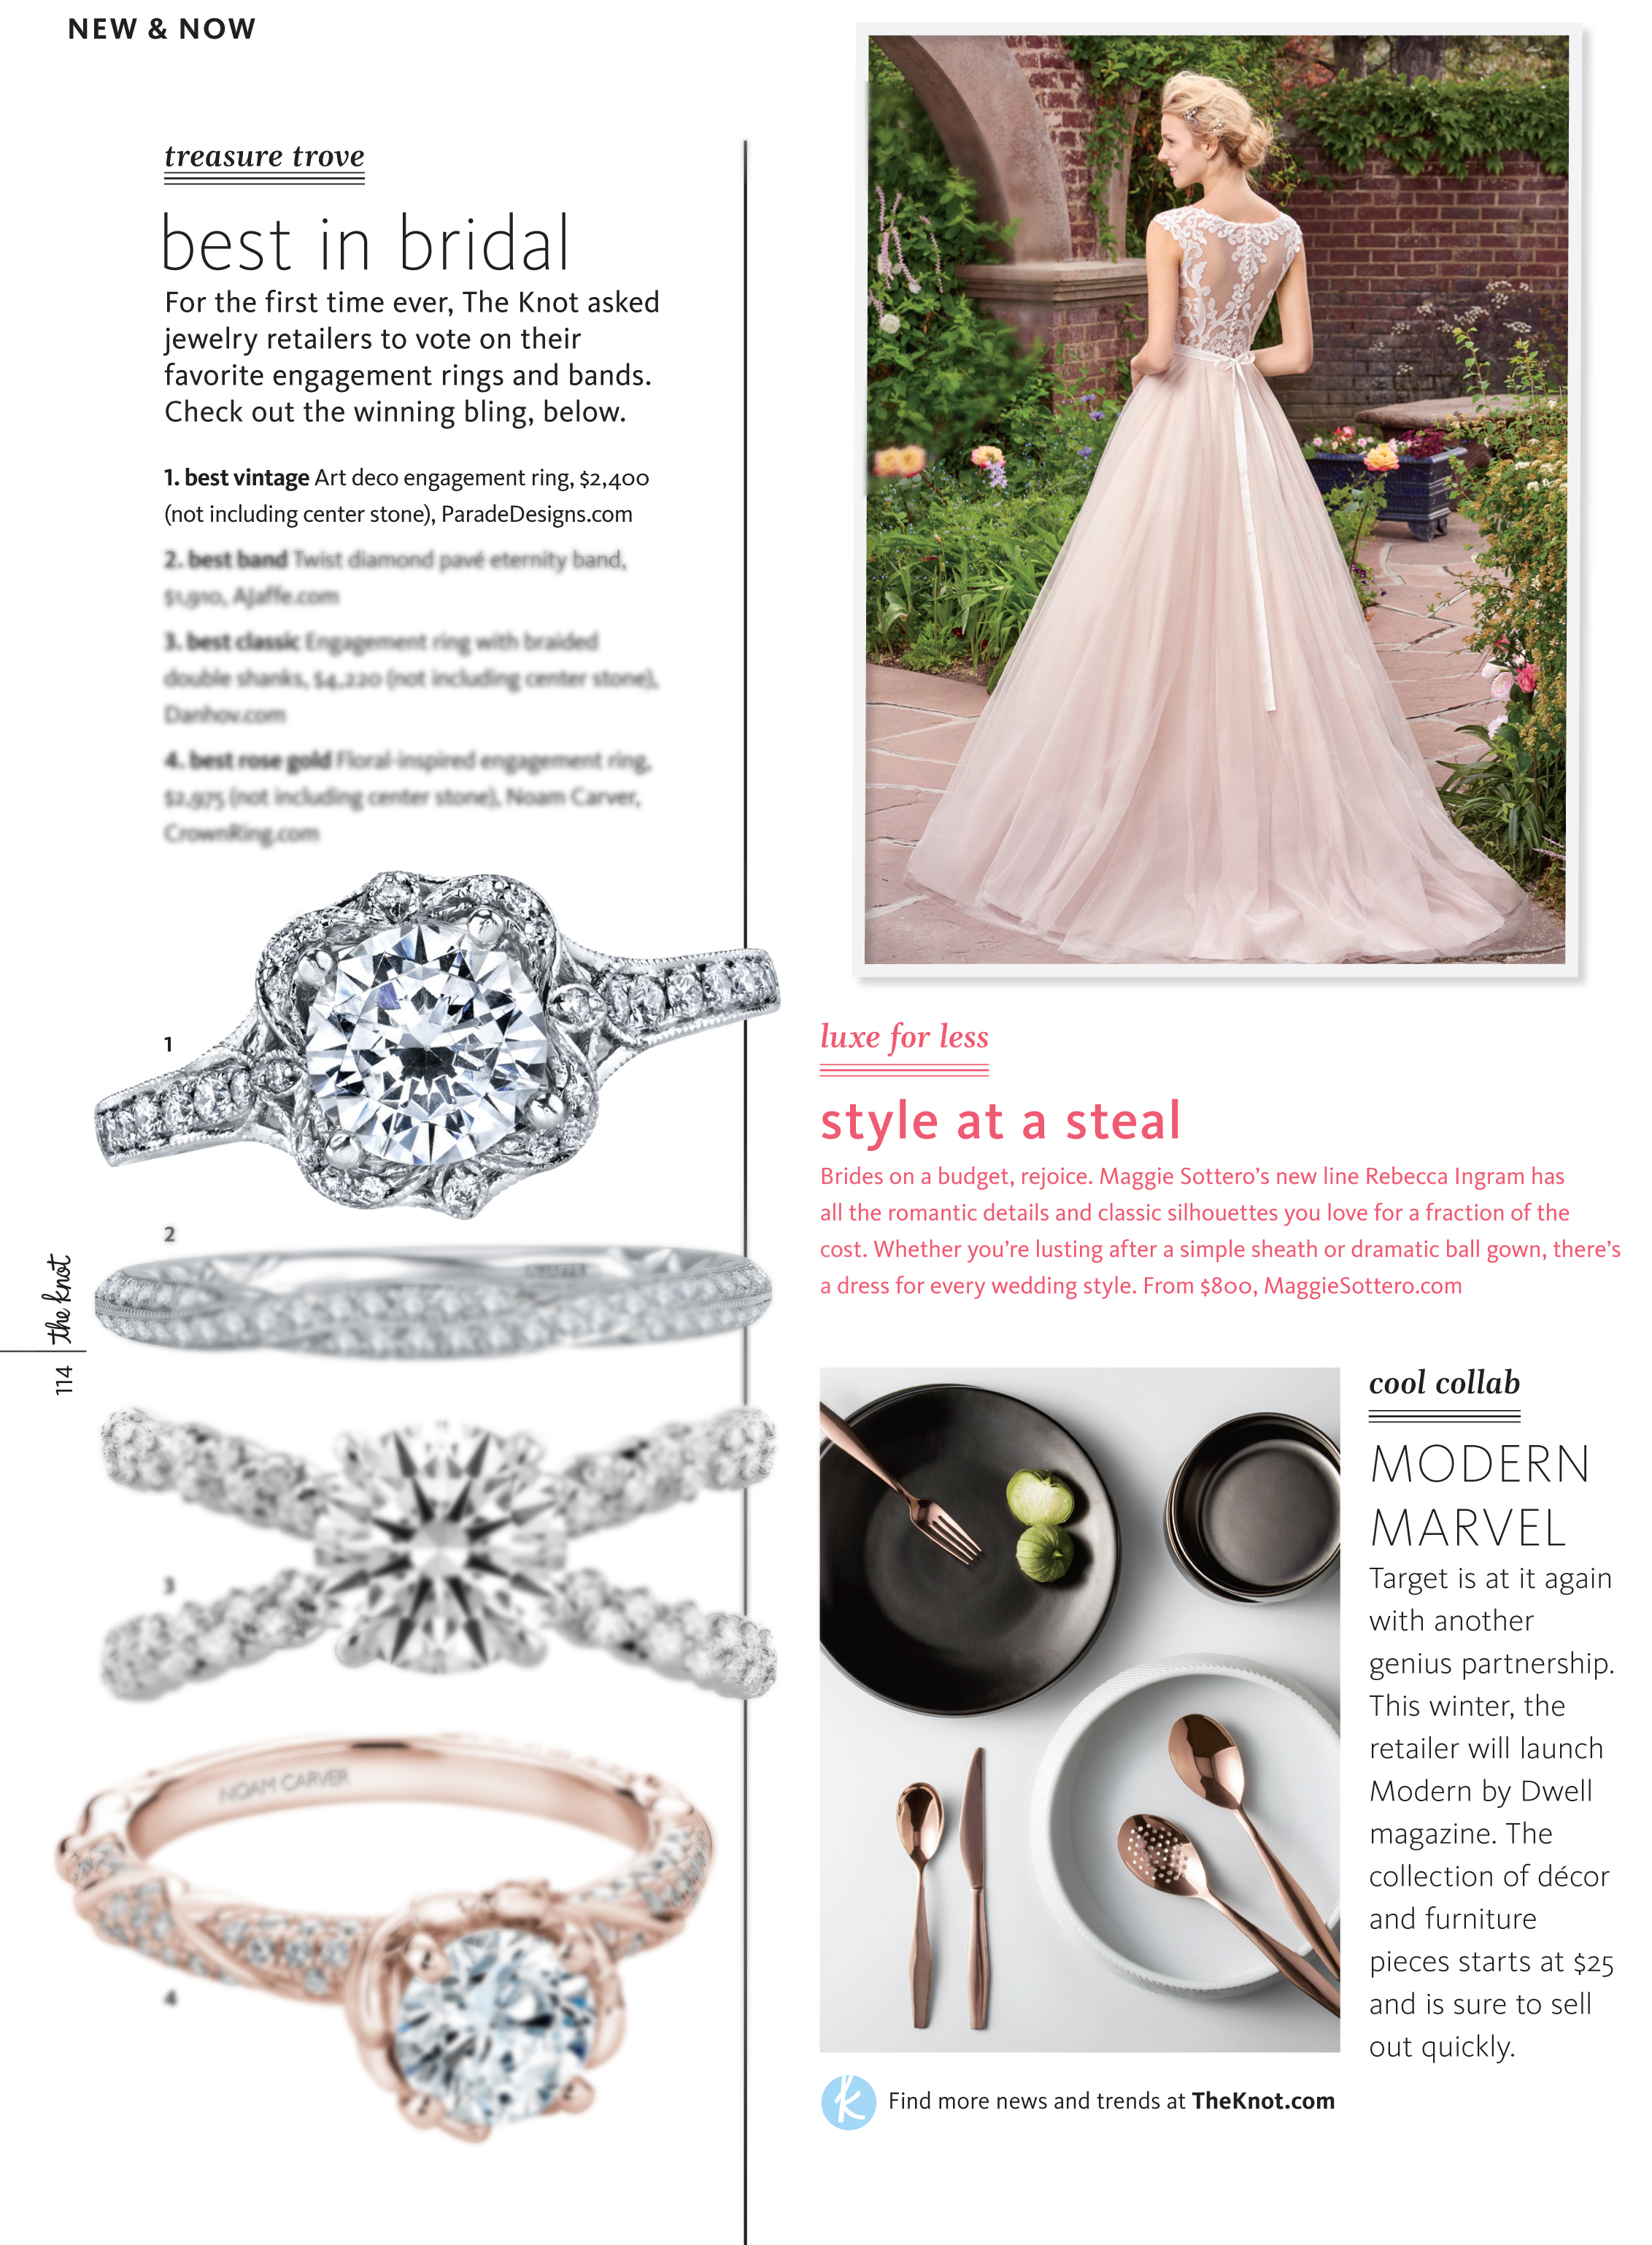 knot magazine editorial sapphire tricolor vintage marvel wedding rings new and now best in bridal